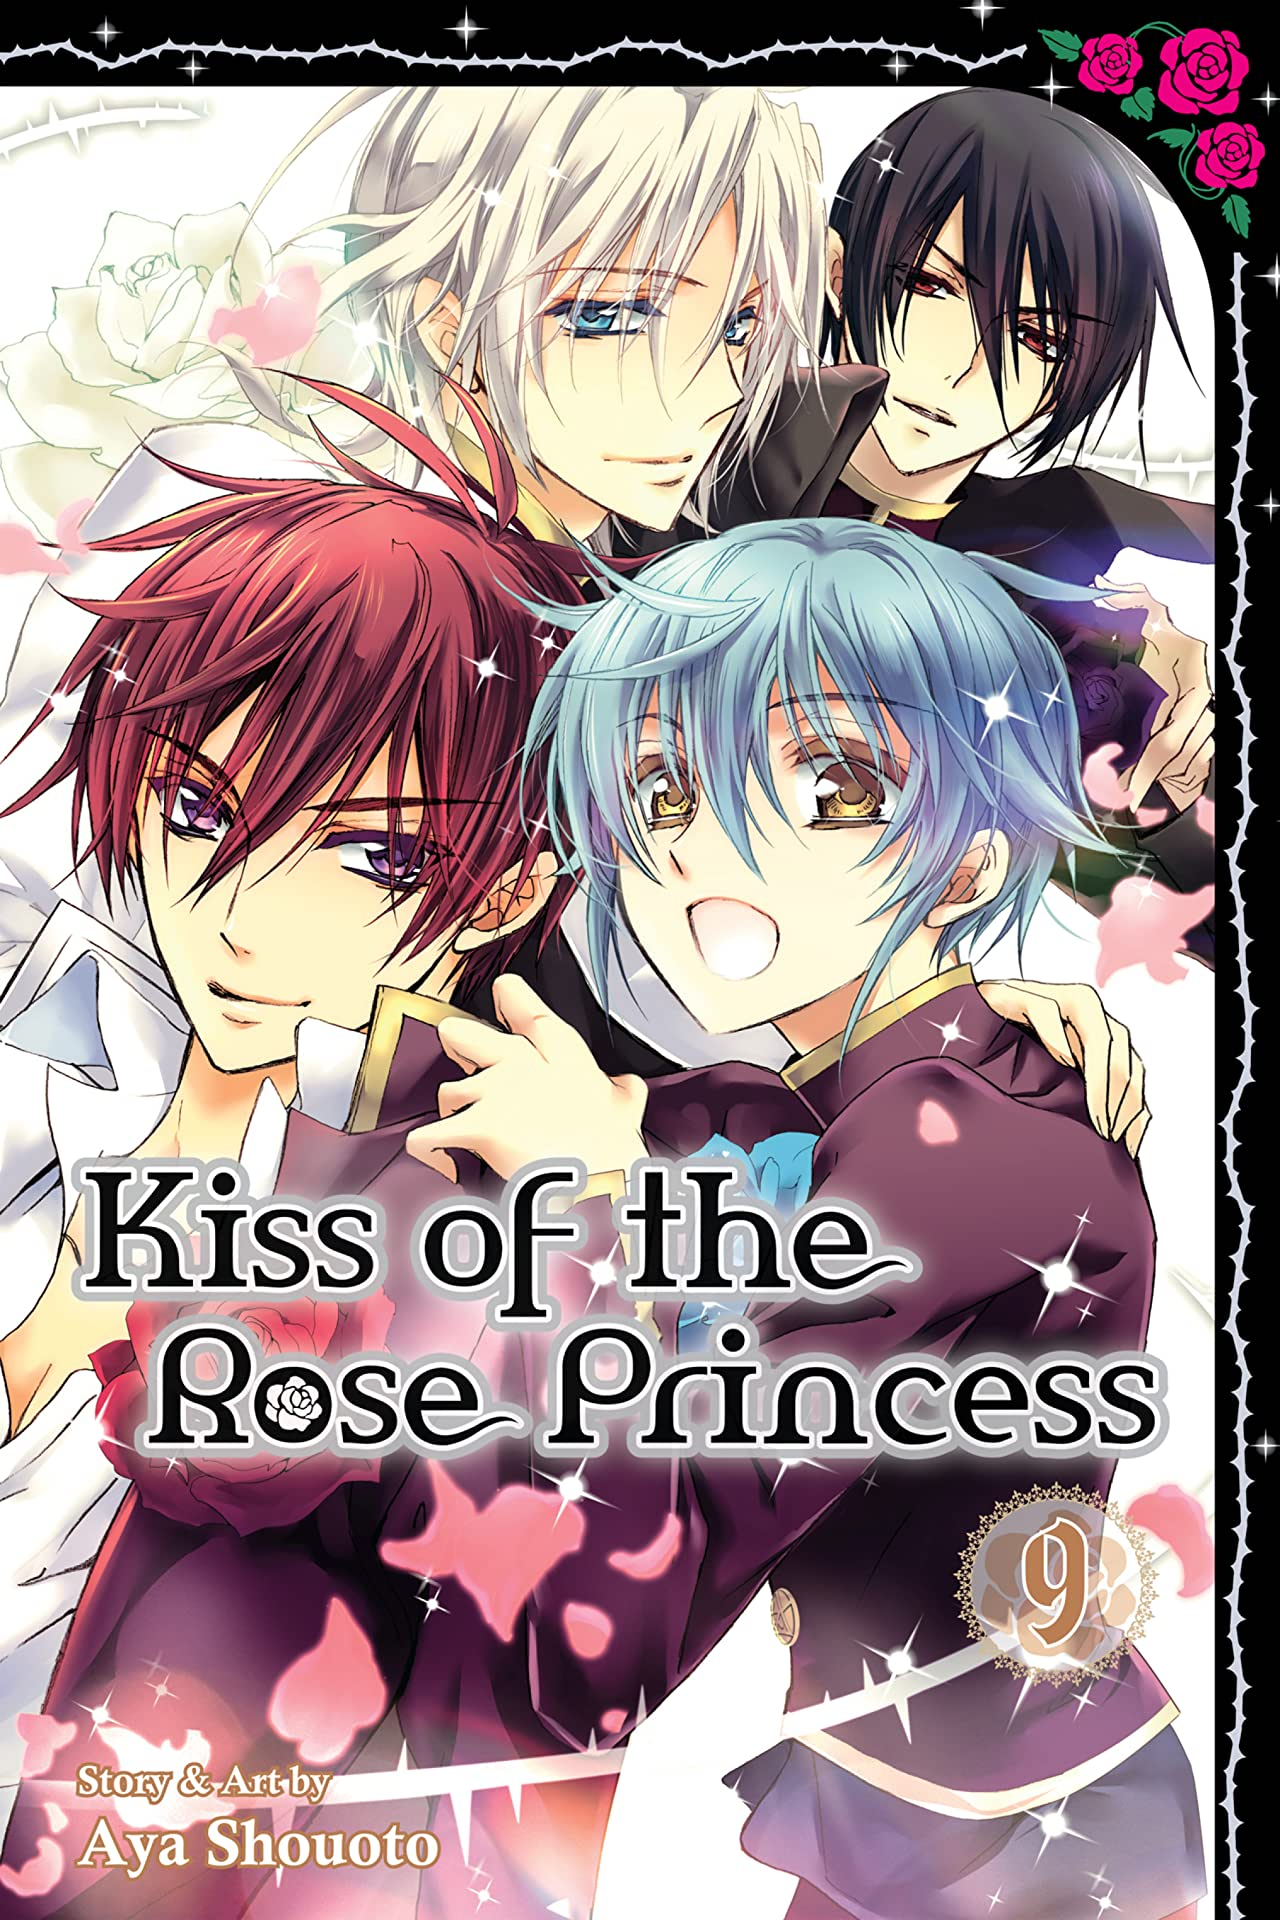 Kiss of the Rose Princess Vol. 9